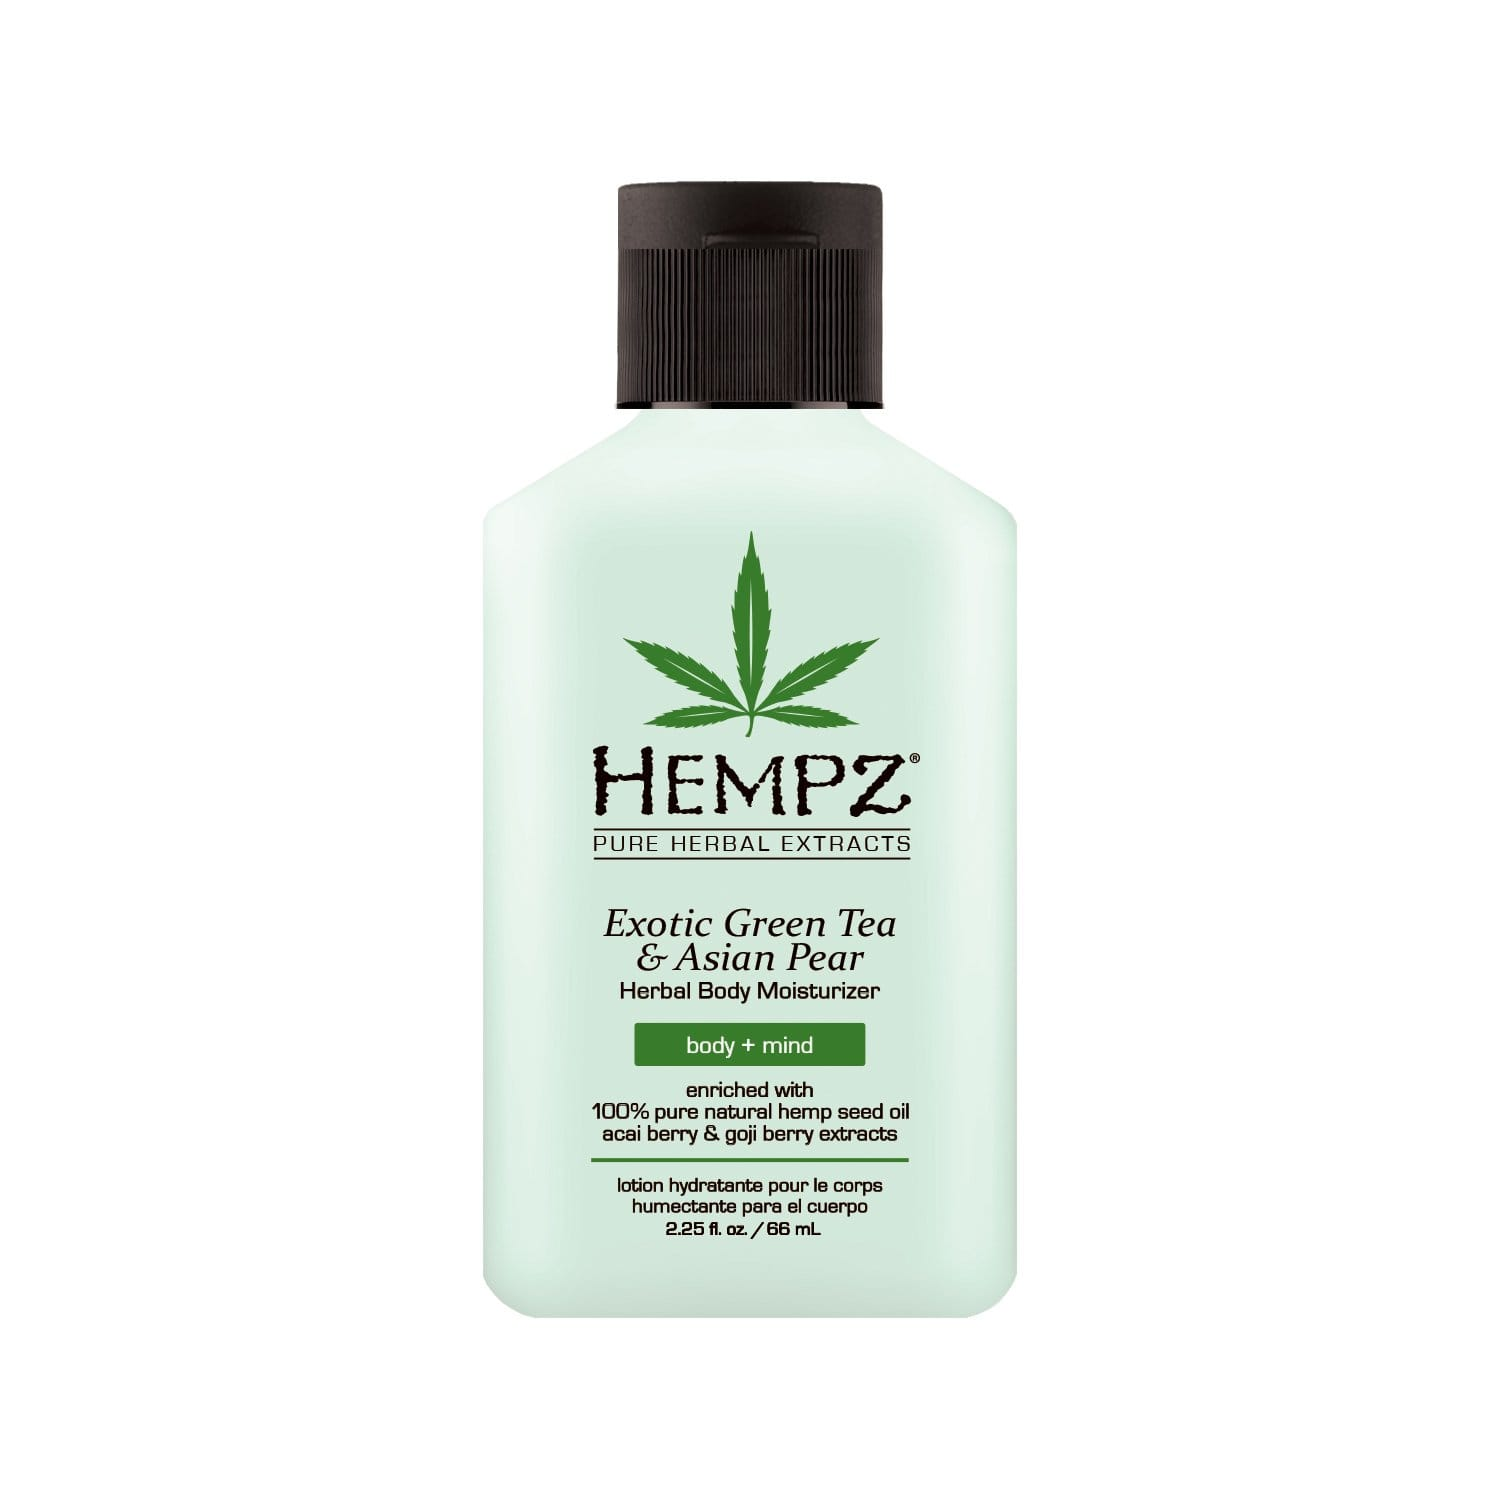 2.25 oz Hempz Exotic Natural Herbal Body Moisturizer with Pure Hemp Seed Oil, Green Tea and Asian Pear,  $2.04 with Subscribe and Save, Amazon